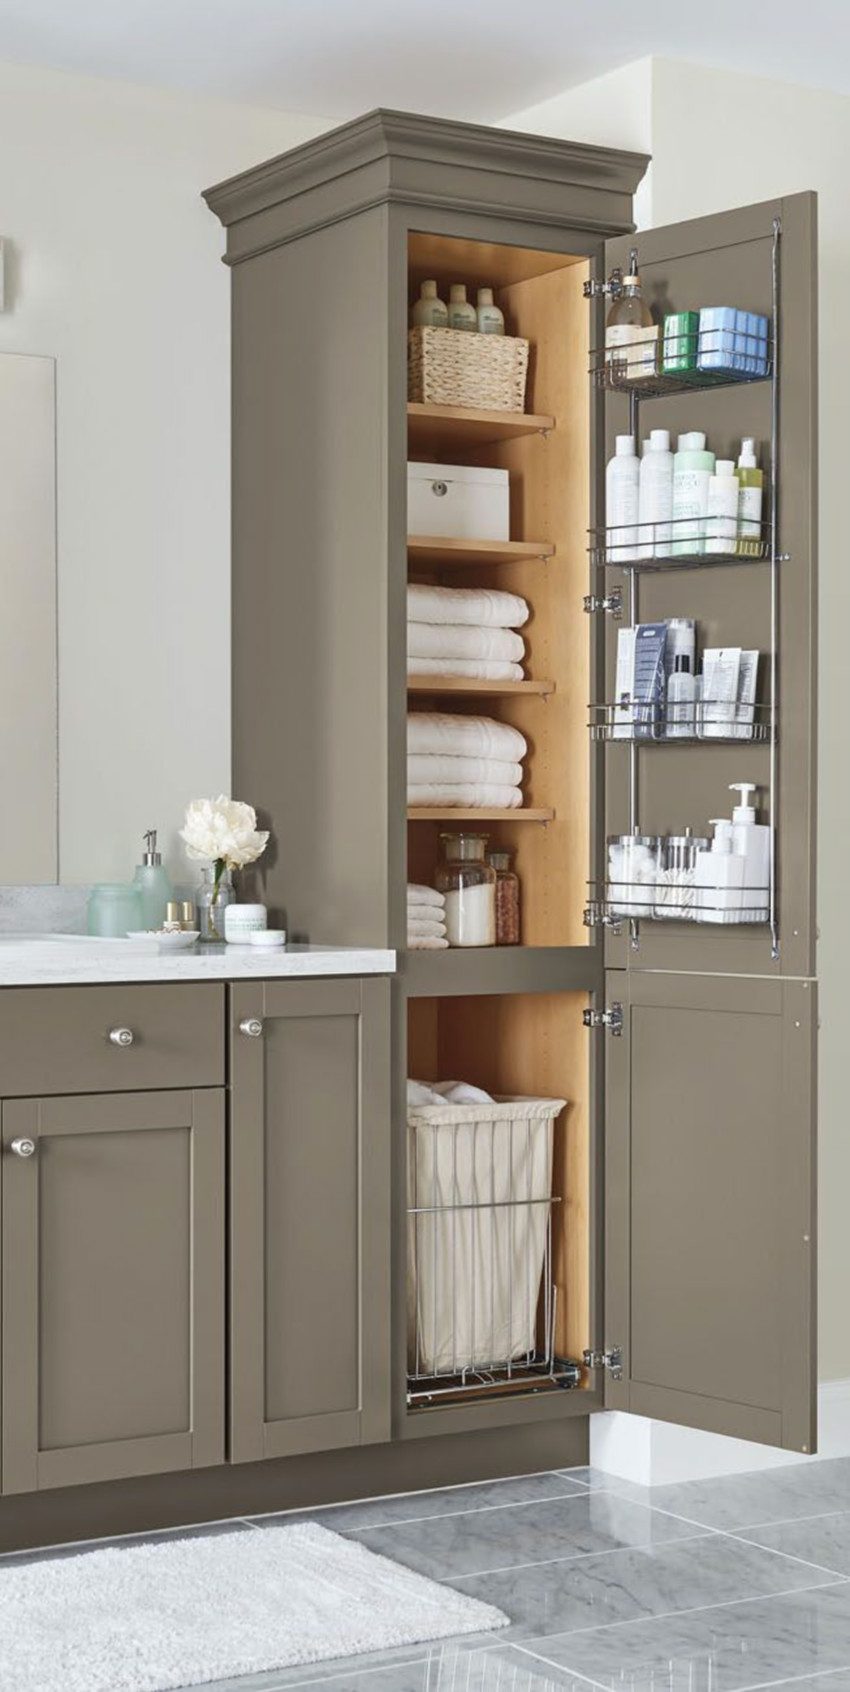 Your bathroom will be much better with a storage solution like this.